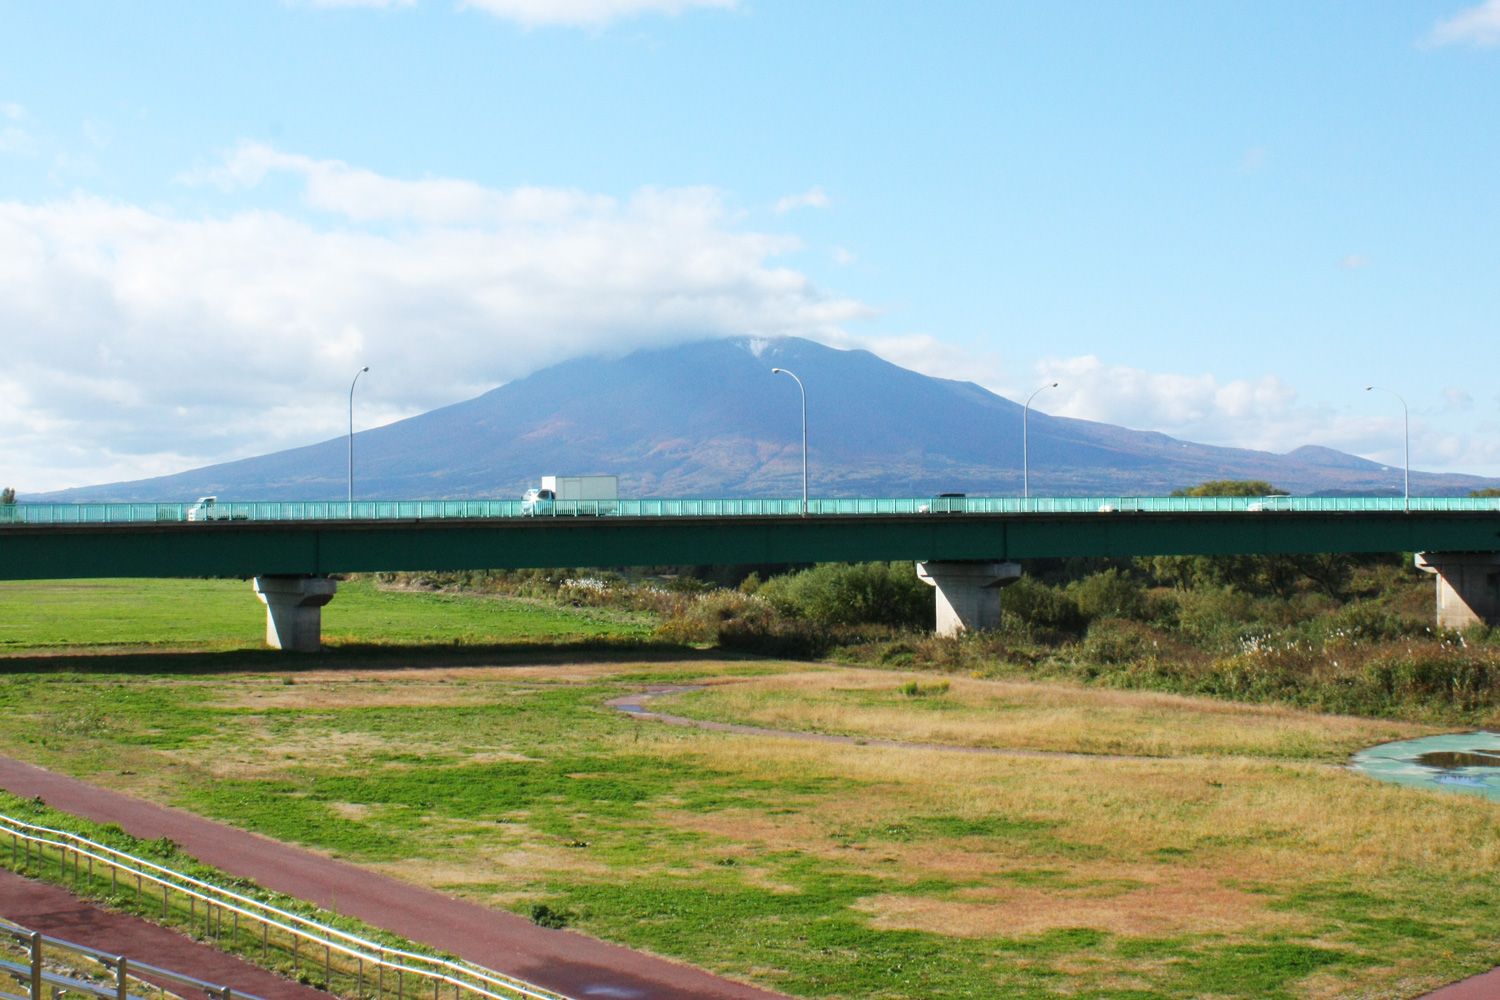 Sports Park view of Mt. Iwaki, also known as Tsugaru's Mt. Fuji